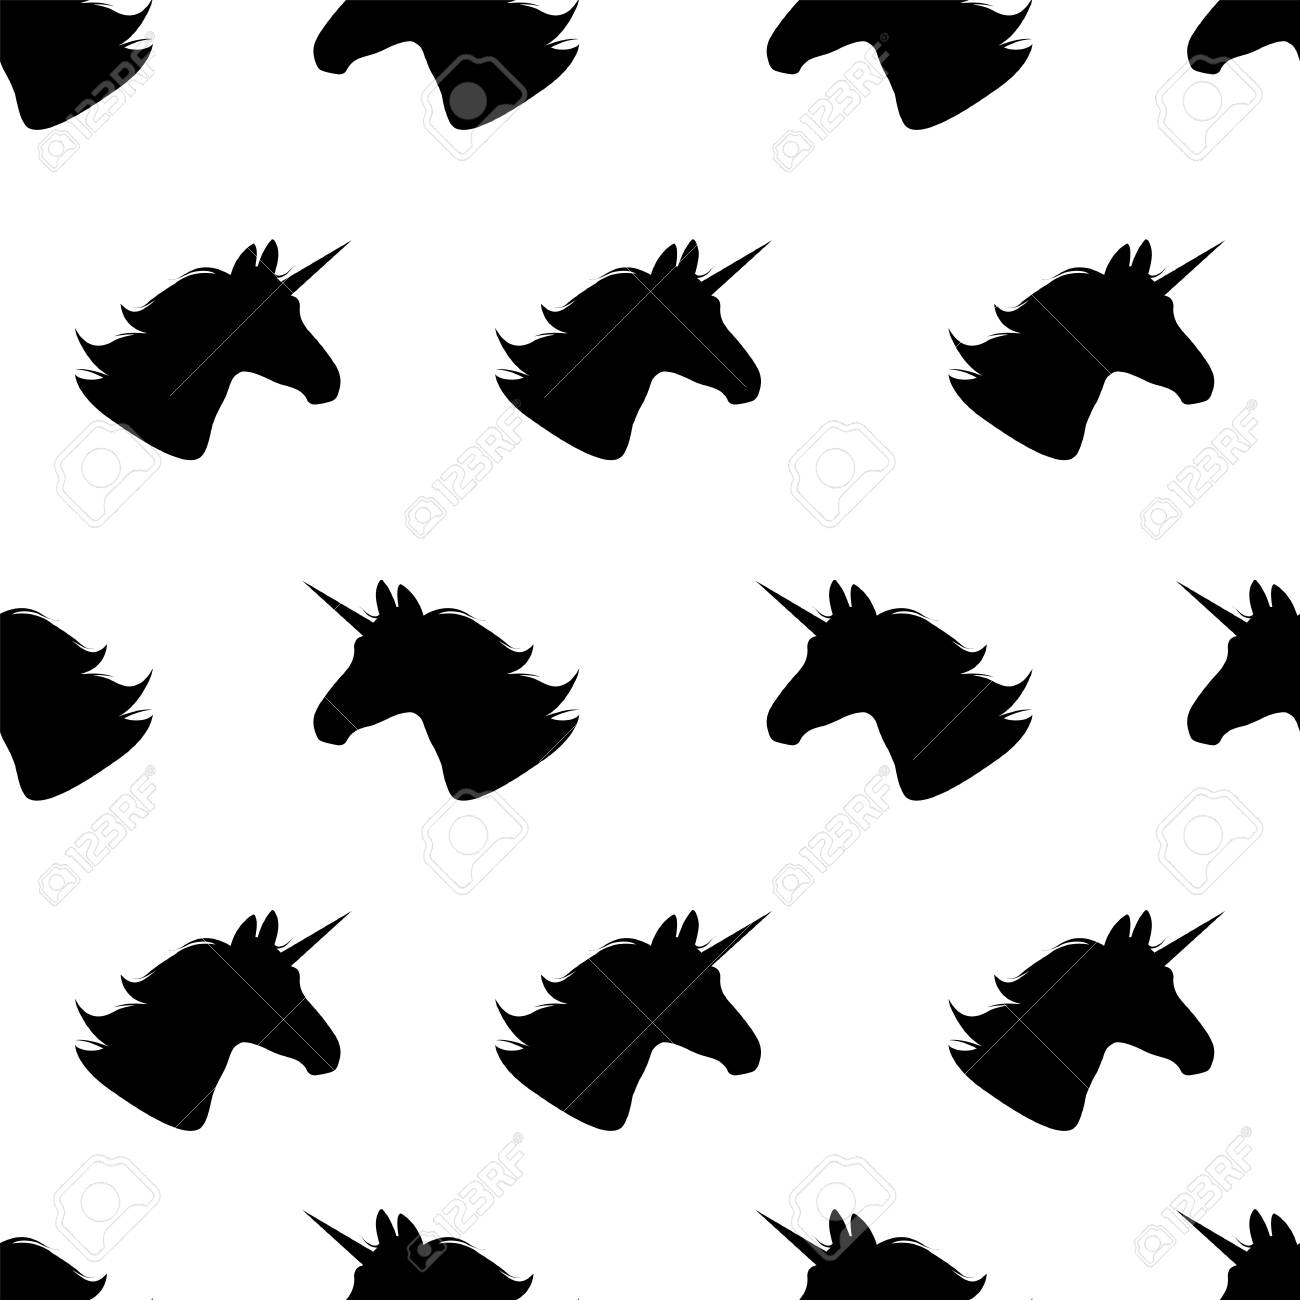 Unicorn  Seamless pattern Vector illustration  Black unicorns